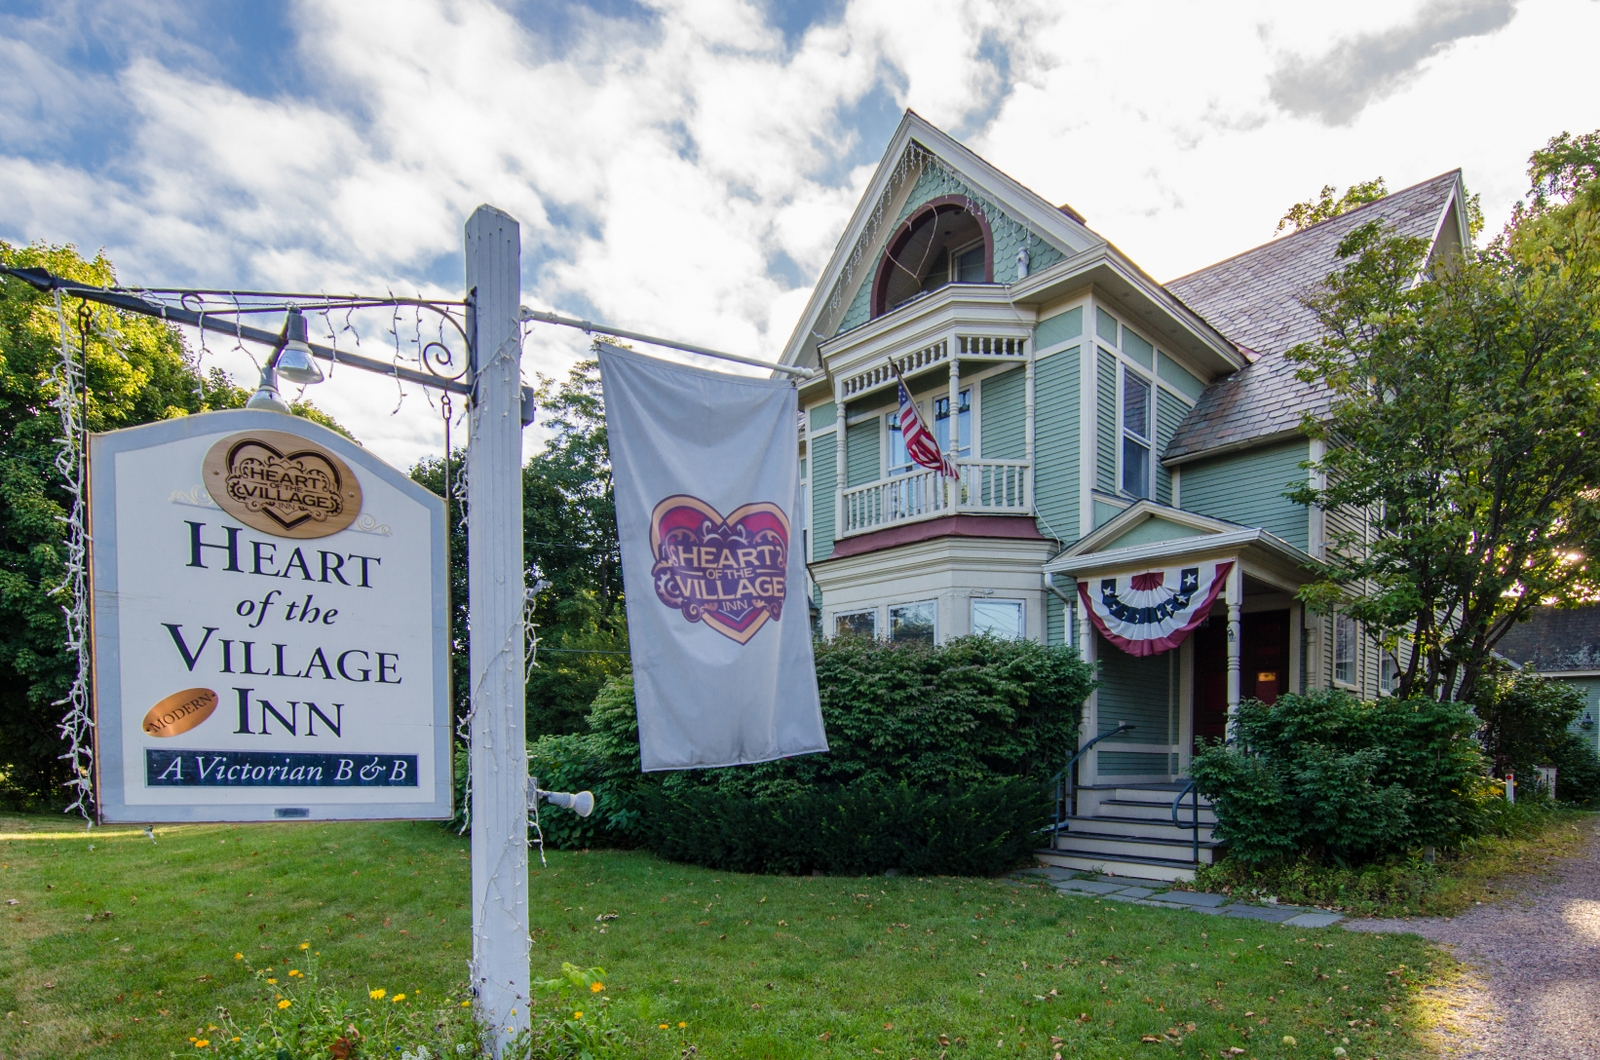 Heart of the Village Inn, a Vermont Bed & Breakfast | Bed & Breakfast in 5347 Shelburne Rd - Shelburne VT - Reviews - Photos - Phone Number